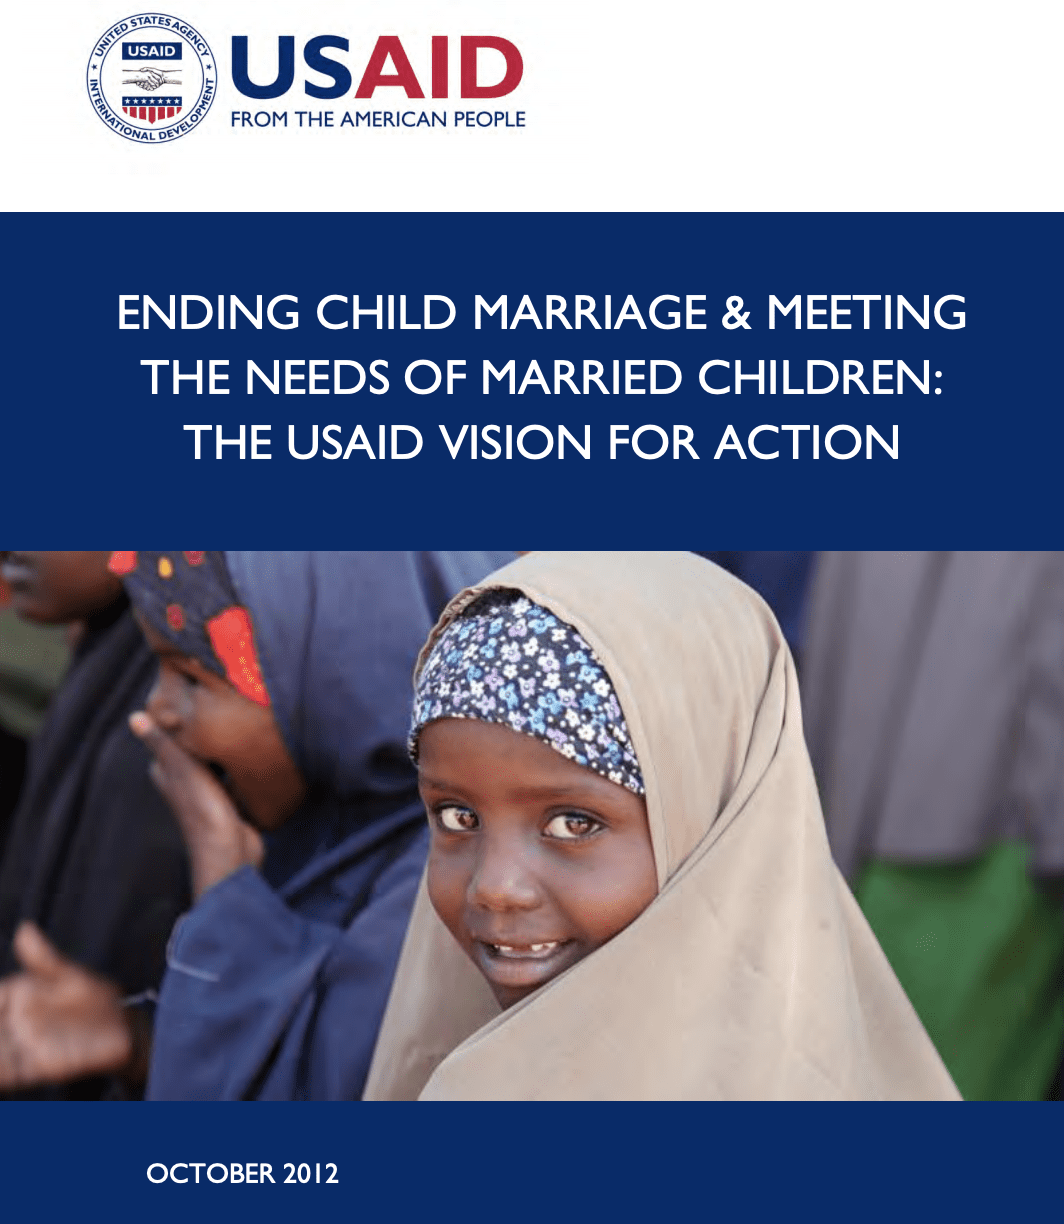 Ending Child Marriage & Meeting the Needs of Married Children: The USAID Vision for Action